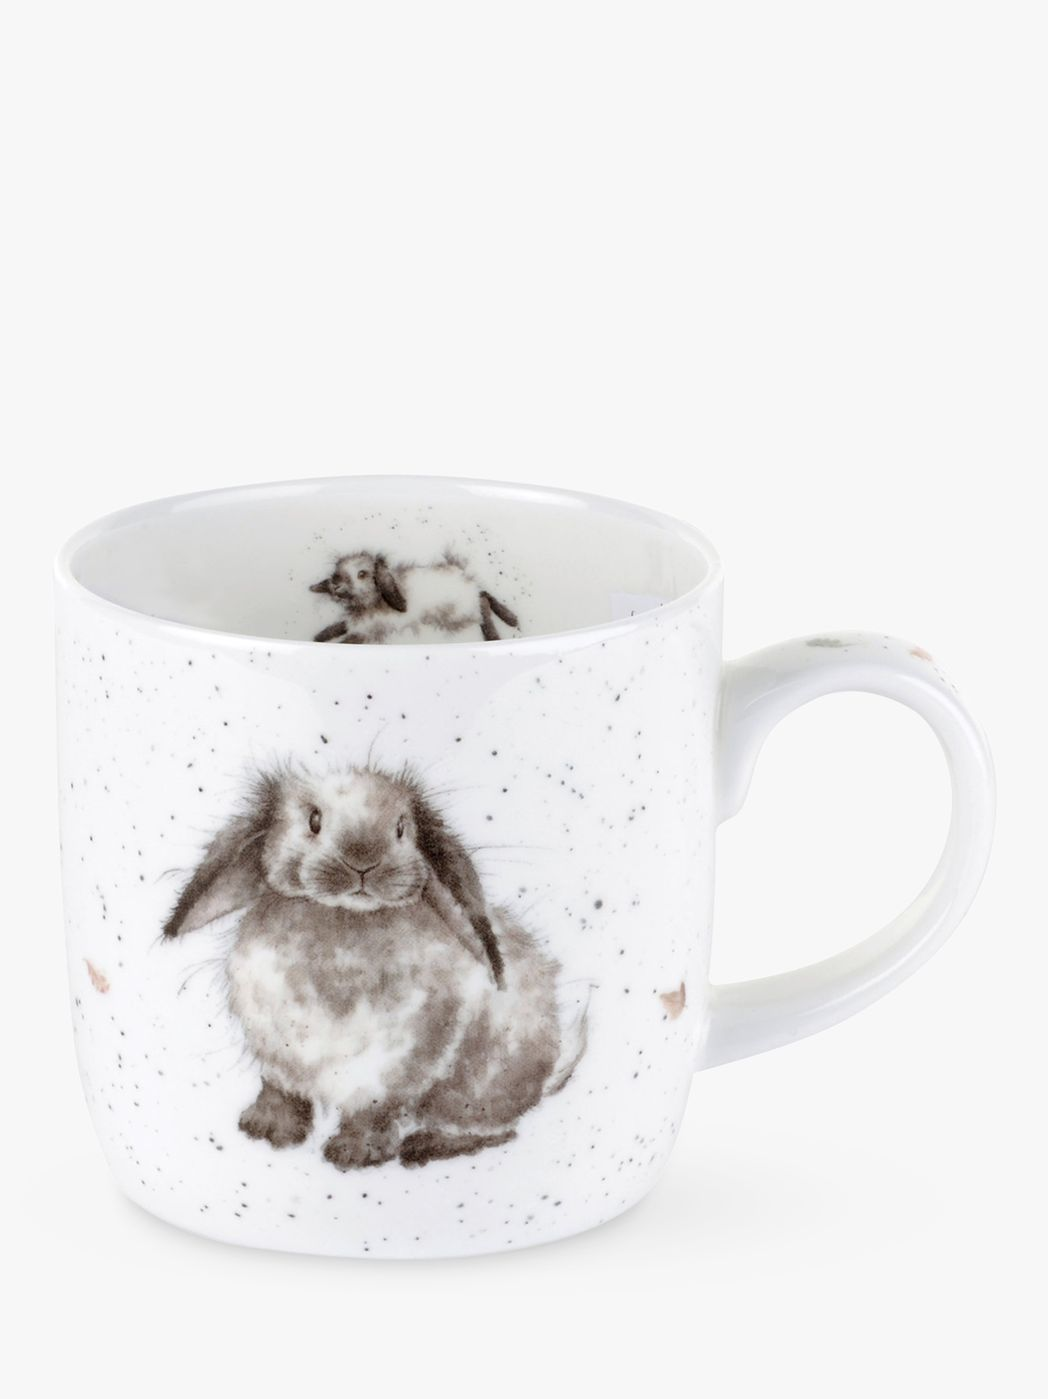 Royal Worcester Wrendale Bunny Mug Bluewater 1631100 : 234345044zoom from bluewater.co.uk size 1000 x 1000 jpeg 53kB